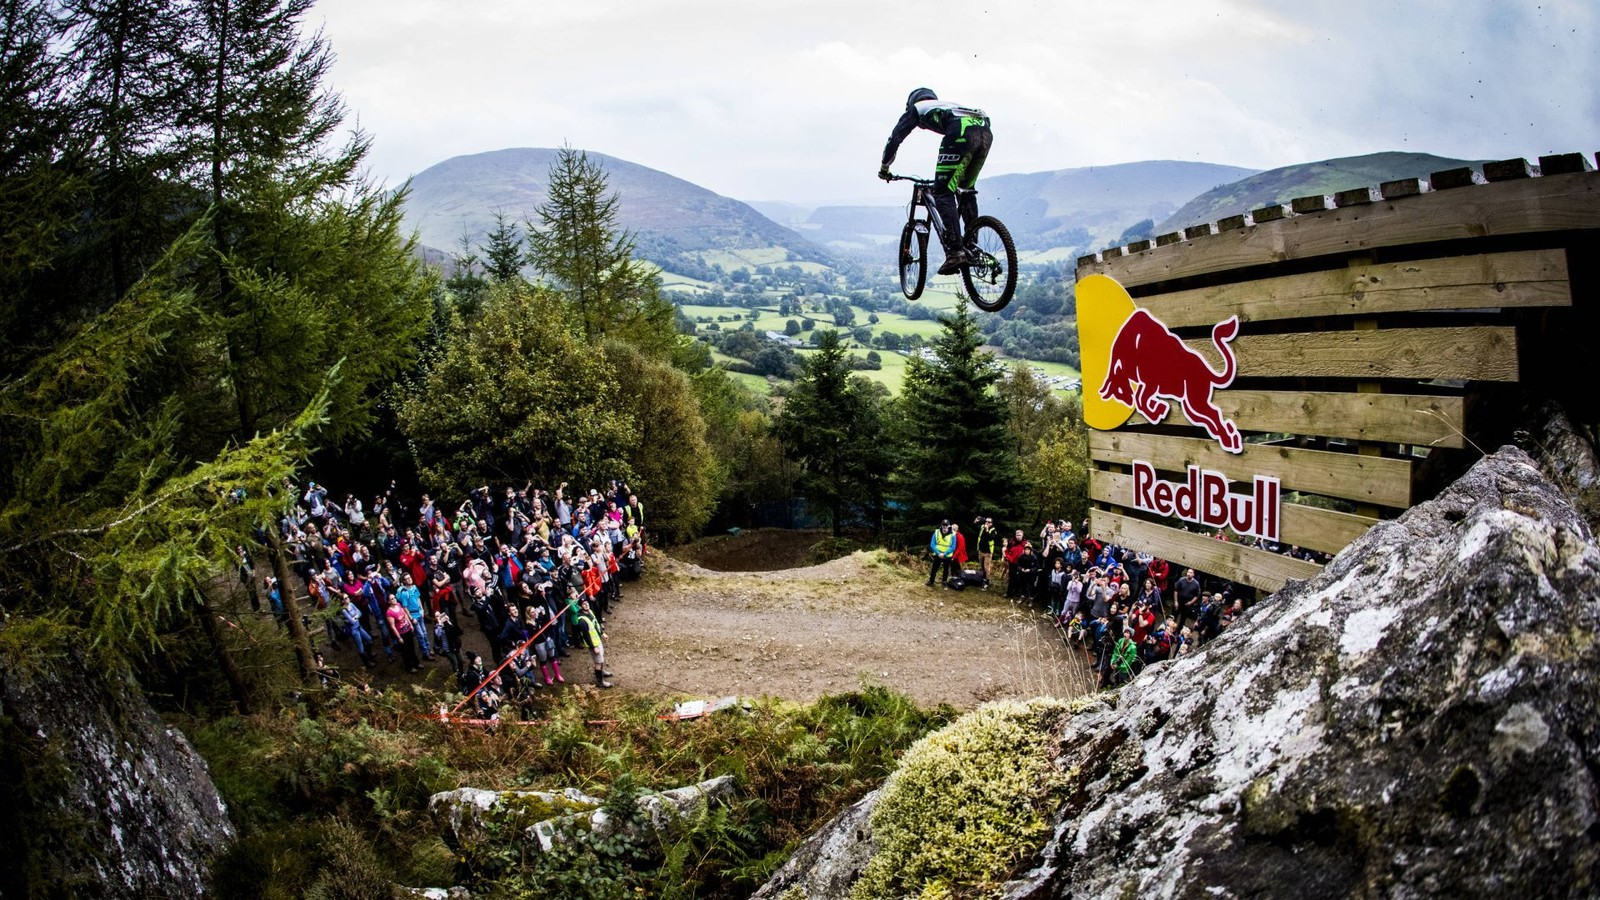 Red Bull Mountain Bike >> Red Bull Hardline Riders Announced Mountain Bikes Press